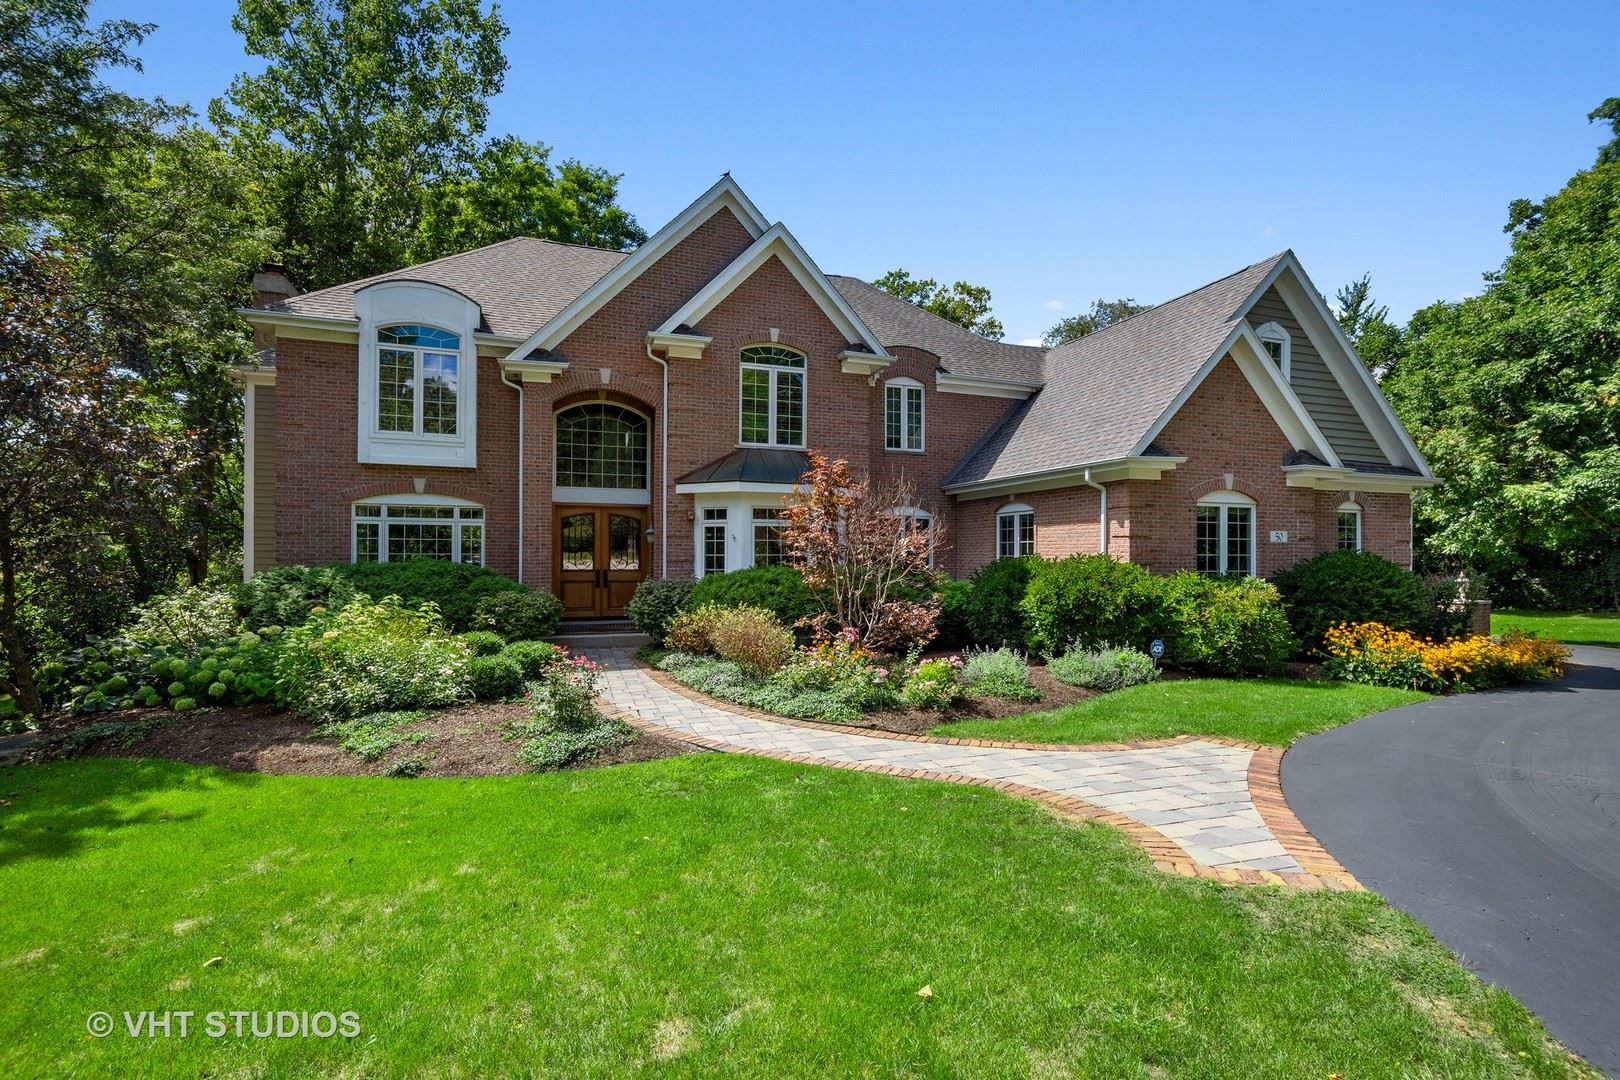 Photo for 50 Whitetail Lane, Barrington, IL 60010 (MLS # 10721058)